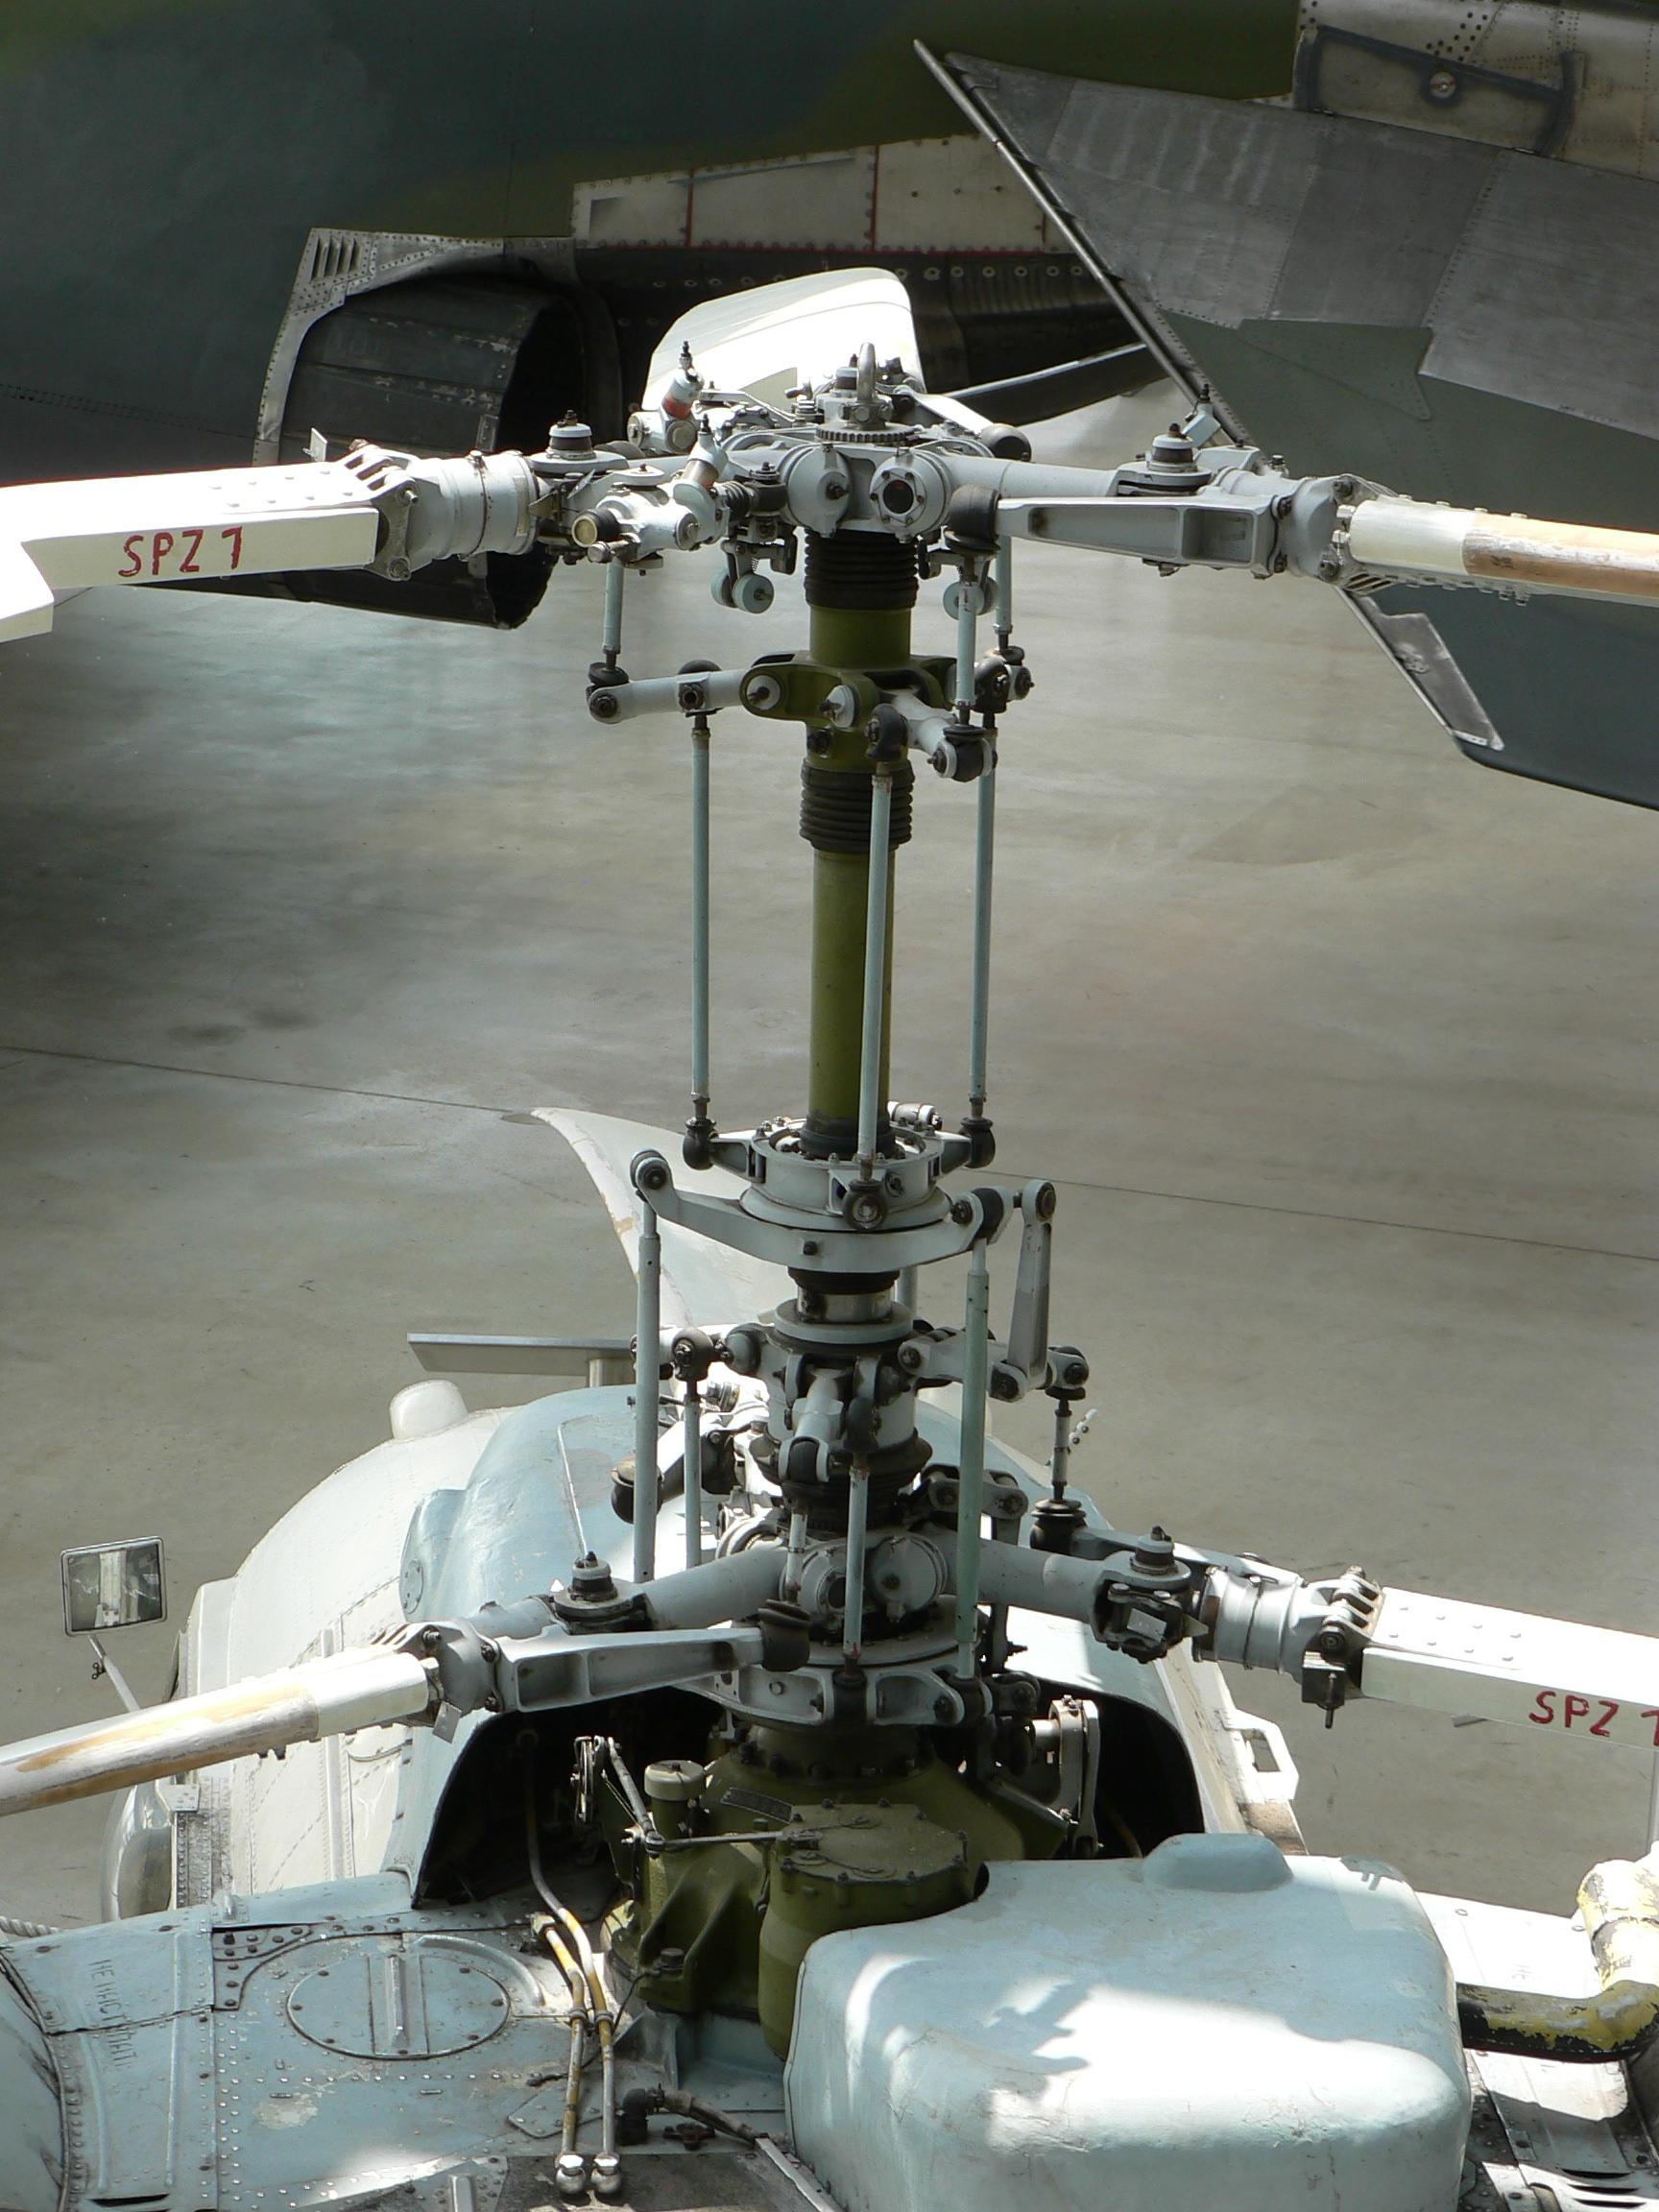 tandem rotor helicopter with File Helicopter Kamov Ka 26 Main Rotor Head on List of united states military helicopters also Coaxial Rotor Helicopters besides File Tiltrotor research aircraft hovering   GPN 2002 000192 likewise 5 January 1956 likewise Los Mejores Helicopteros De Ataque Son Rusos.